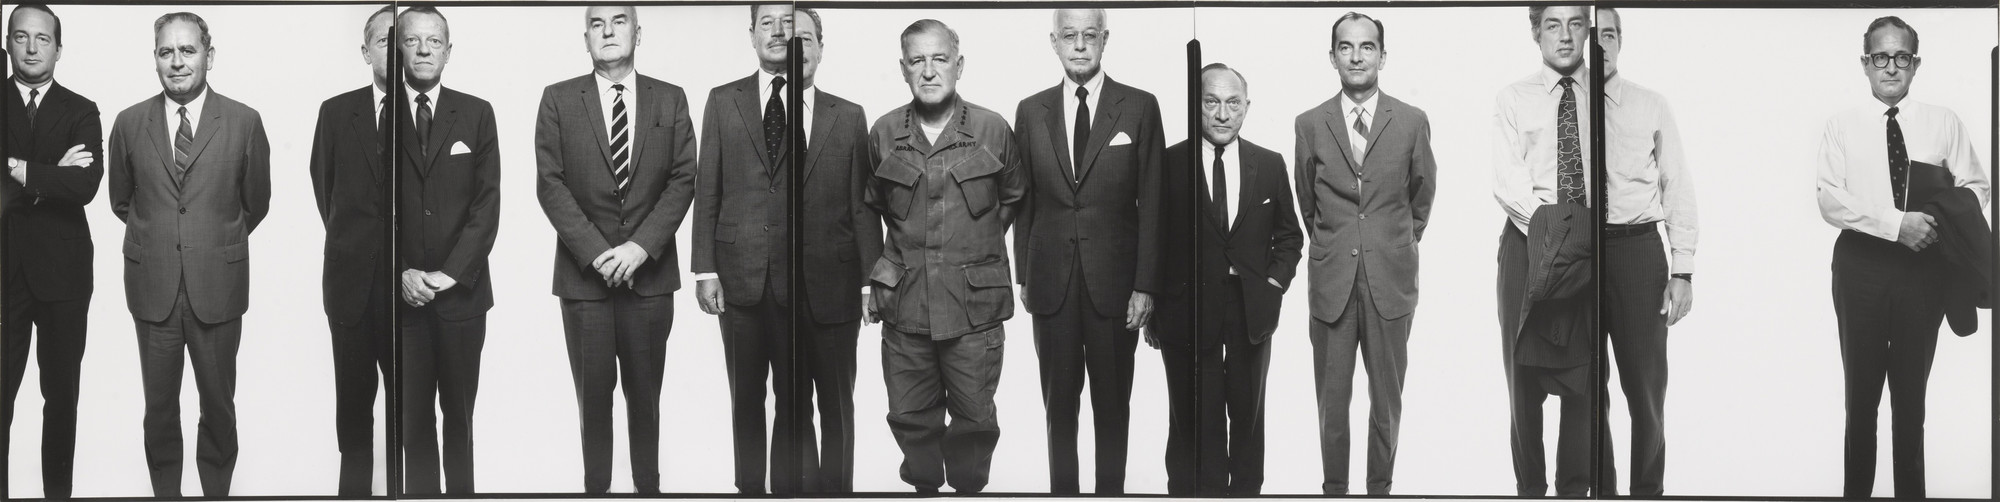 Richard Avedon. The Mission Council. Left to right: Hawthorne Q. Mills, Mission Coordinator; Ernest J. Colantonio, Counselor of Embassy for Administrative Affairs; Edward J. Nickel, Minister Counselor for Public Affairs; John E. McGowan, Minister Counselor for Press, affairs; George D. Jacobson, assistant chief of staff; General Creighton W. Abrams, commander United States Military Assistance Command, Vietnam; Ambassador Ellsworth Bunker; Deputy Ambassador Samuel D. Berger; John R. Mossler, minister director, United, States Agency for International Development; Charles A. Cooper, minister counselor for economic affairs; Laurin B. Askew, counselor of Embassy for Political Affairs. Saigon, South Vietnam. April 27, 1971